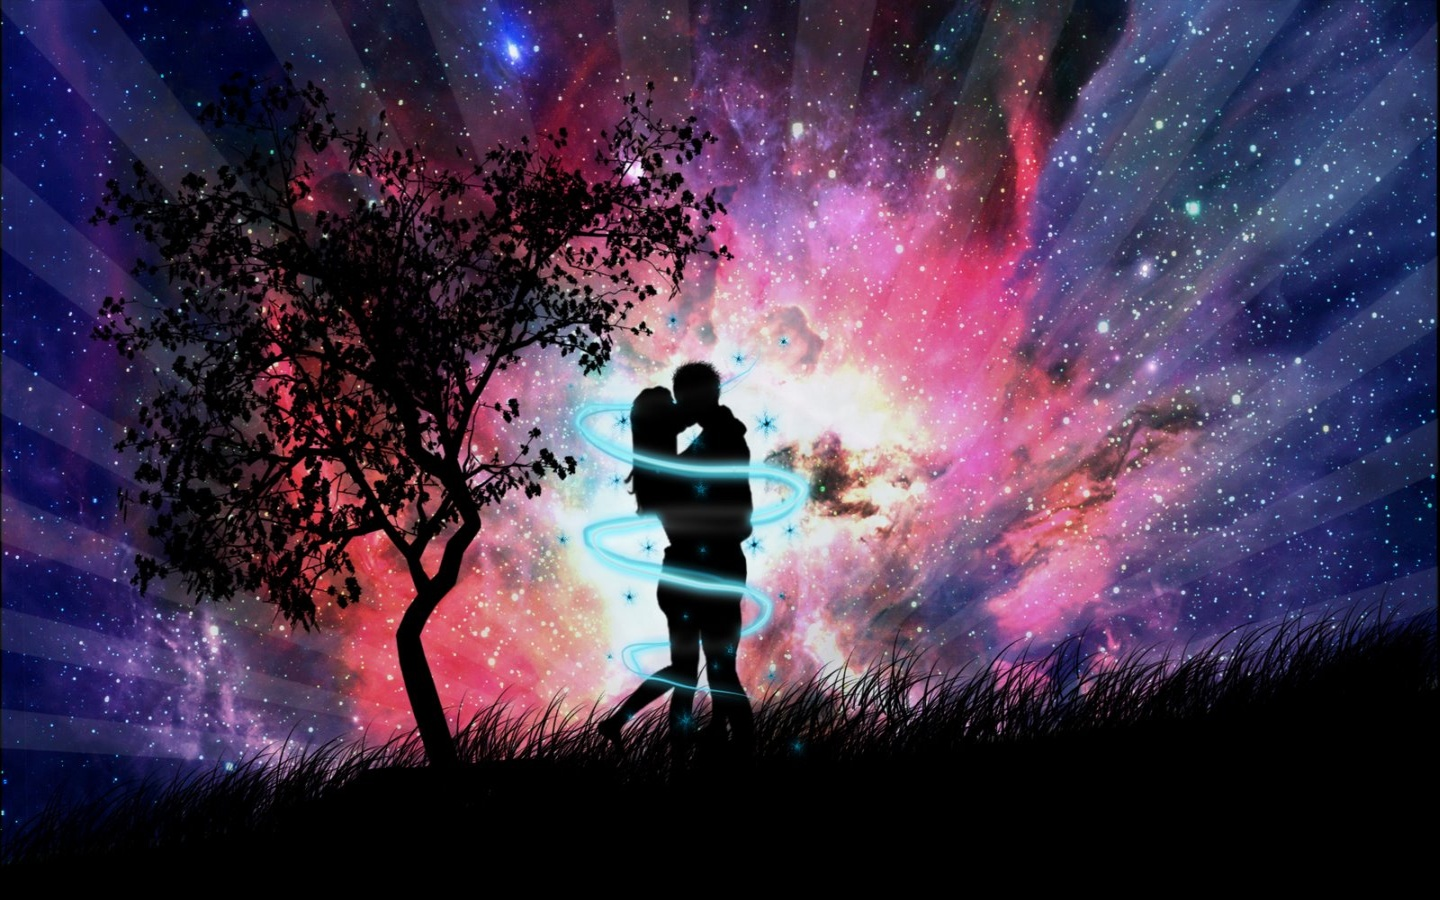 1440x900 night couple kissing desktop pc and mac wallpaper